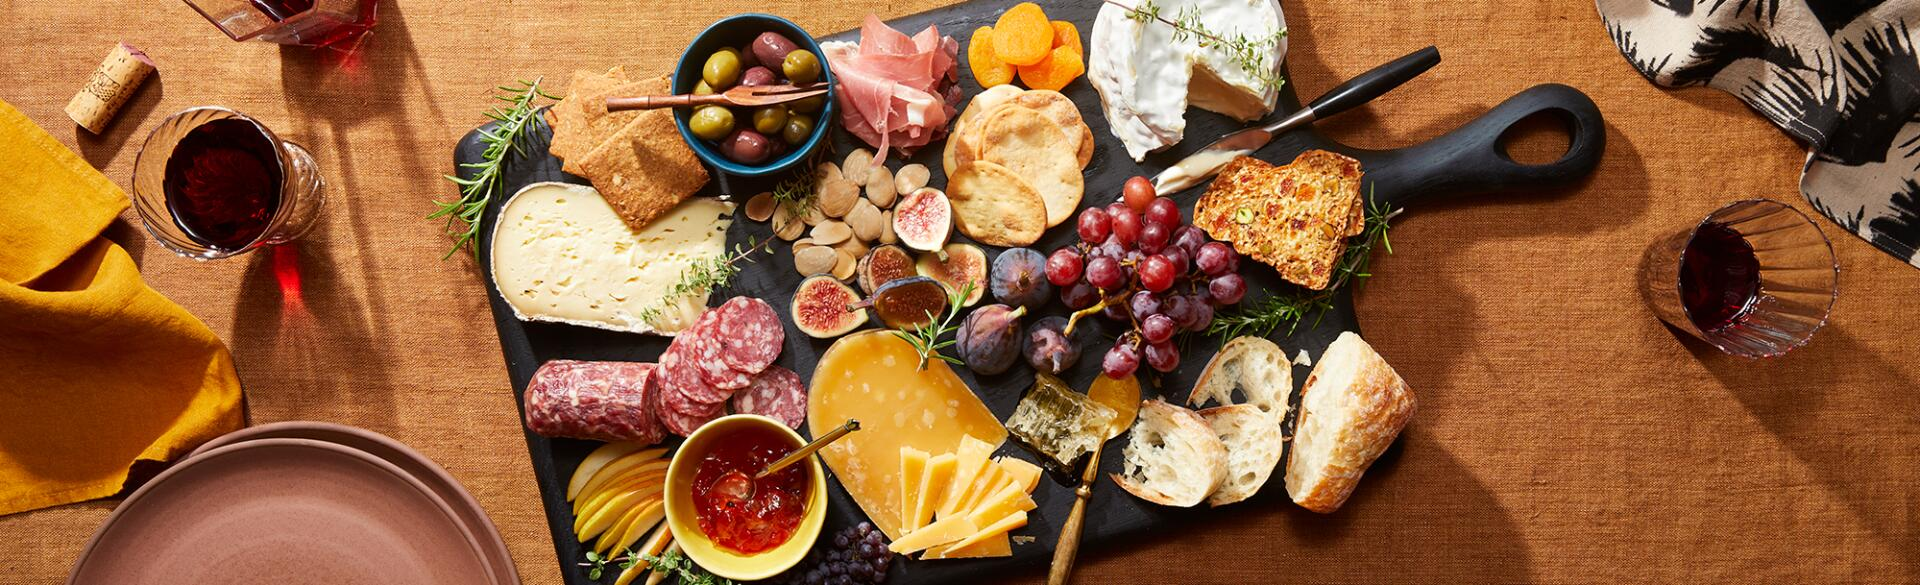 Charcuterie board with a display of cheese and meats on a rust colored table cloth, red wine, plates and napkins